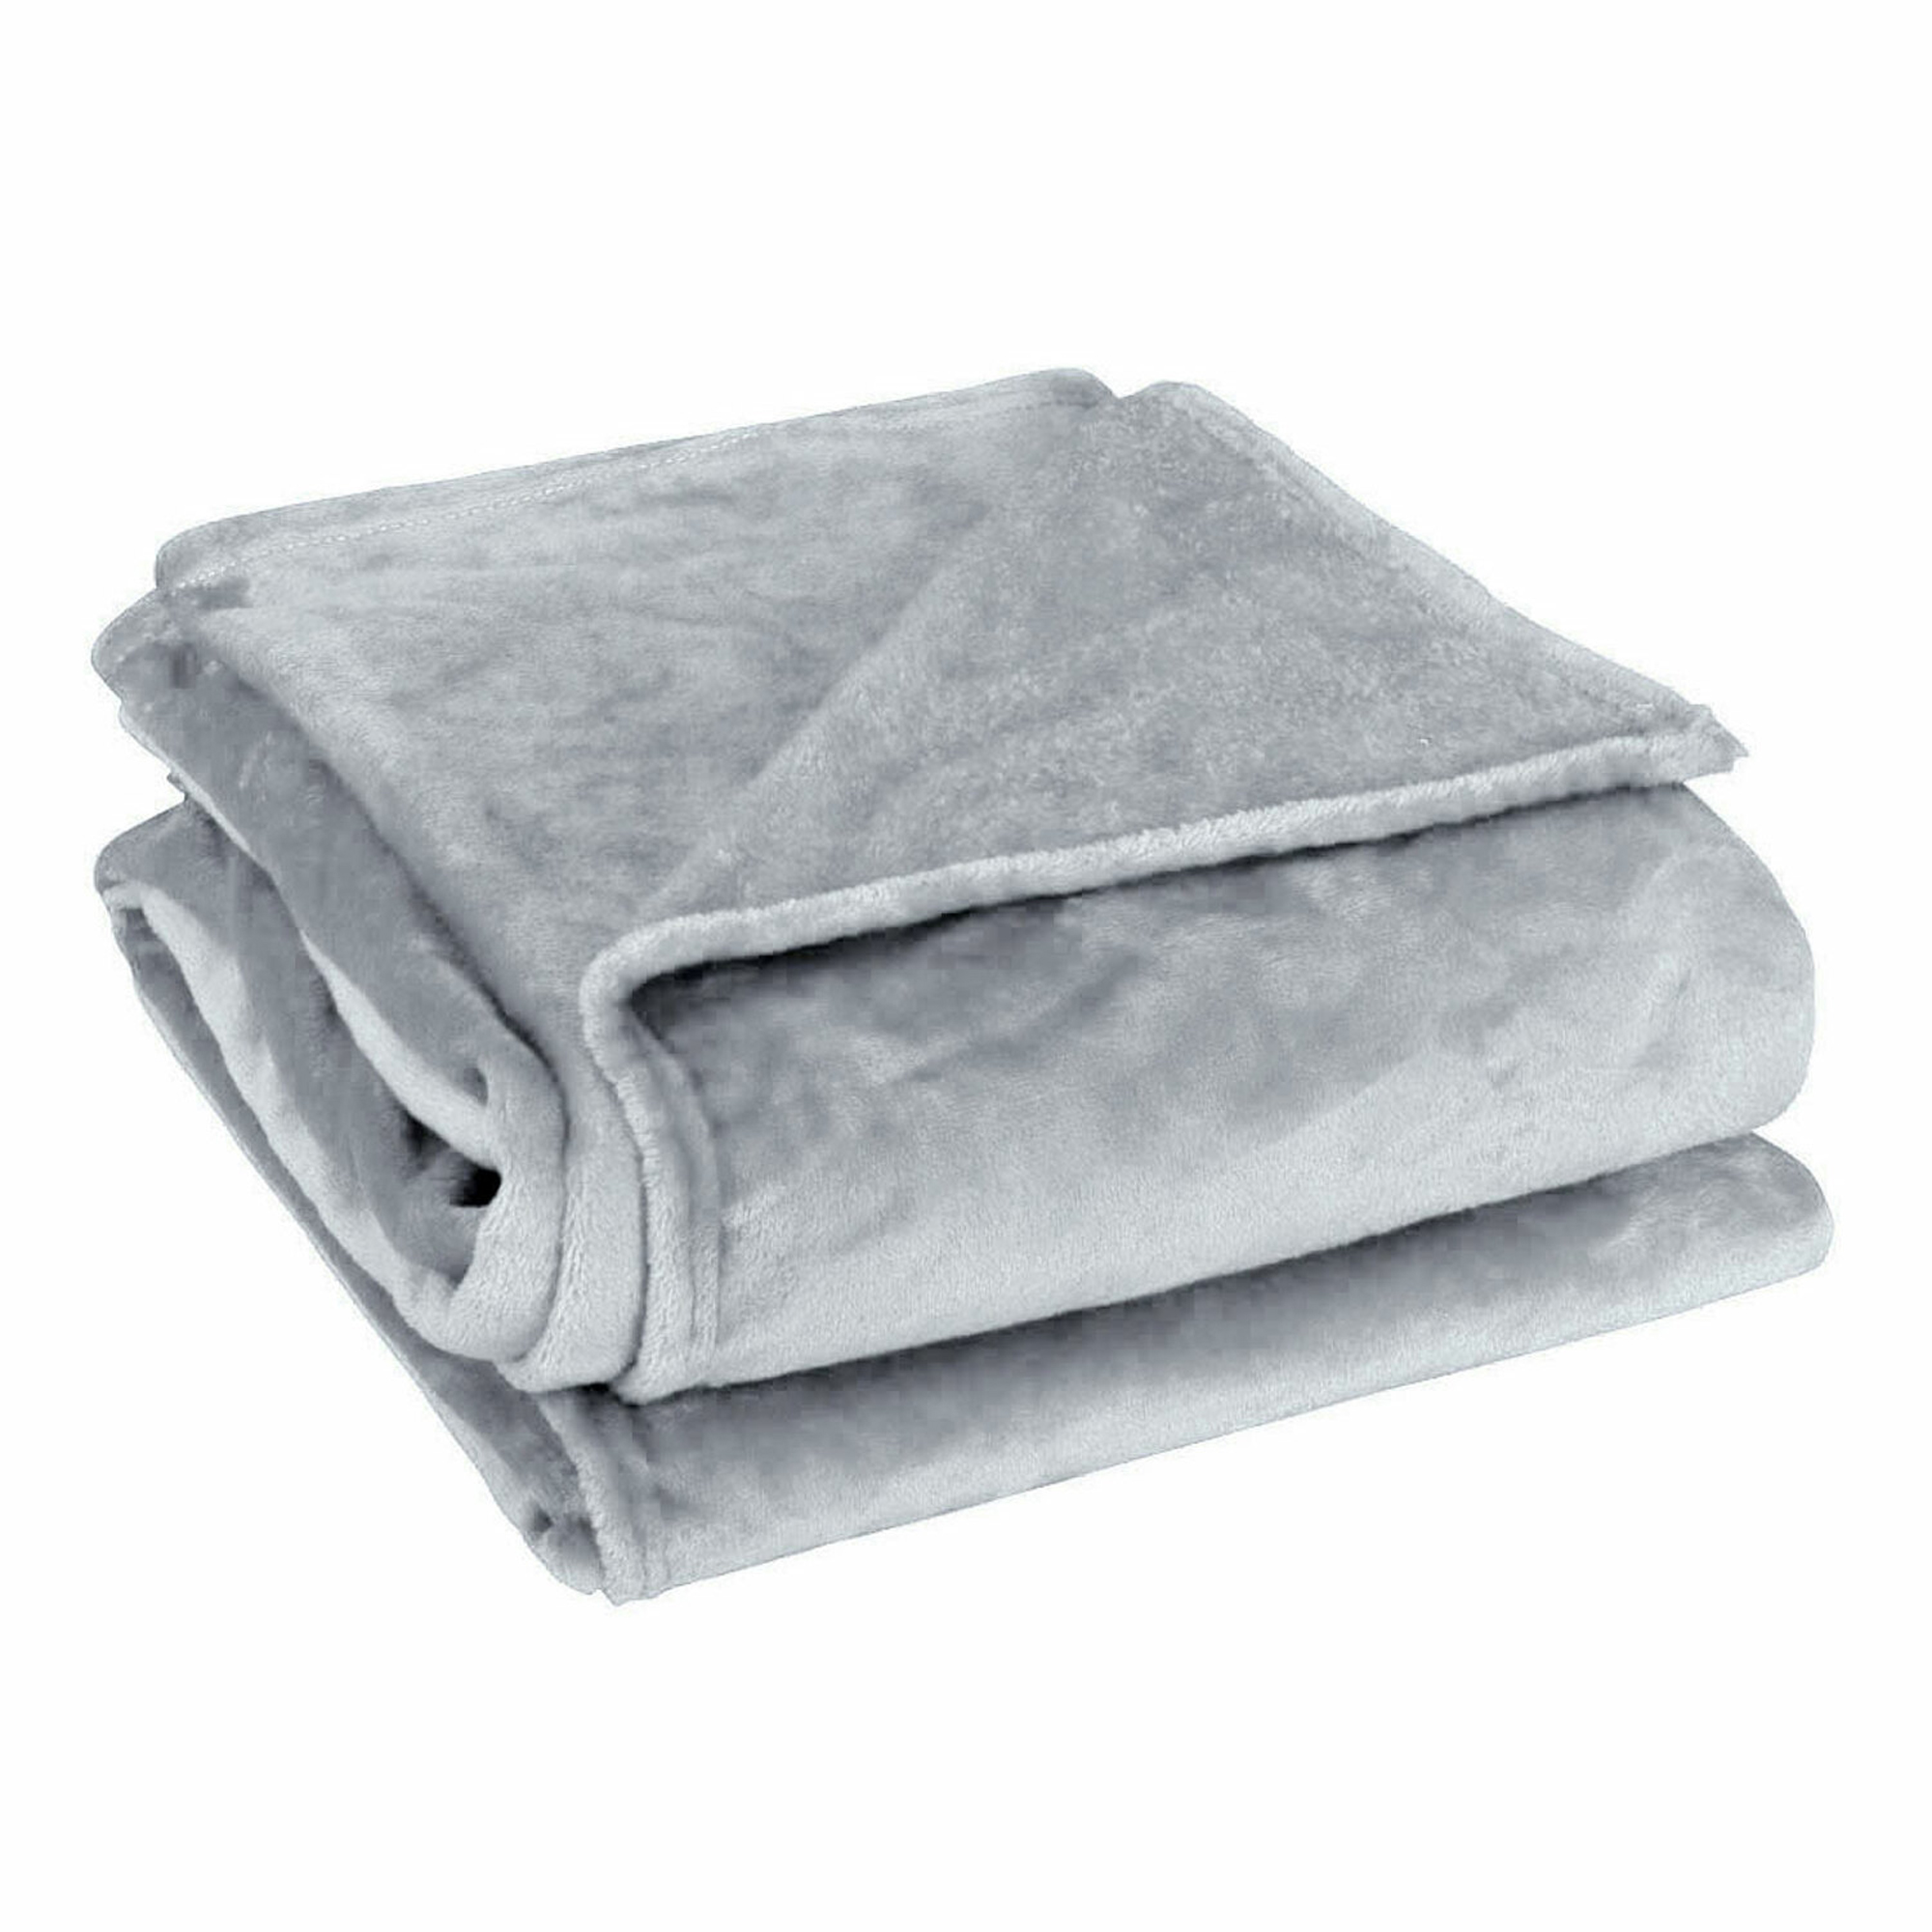 Sofa Polyester plush Throws Blanket Warm Soft Light Gray Full Size 180 x 200cm